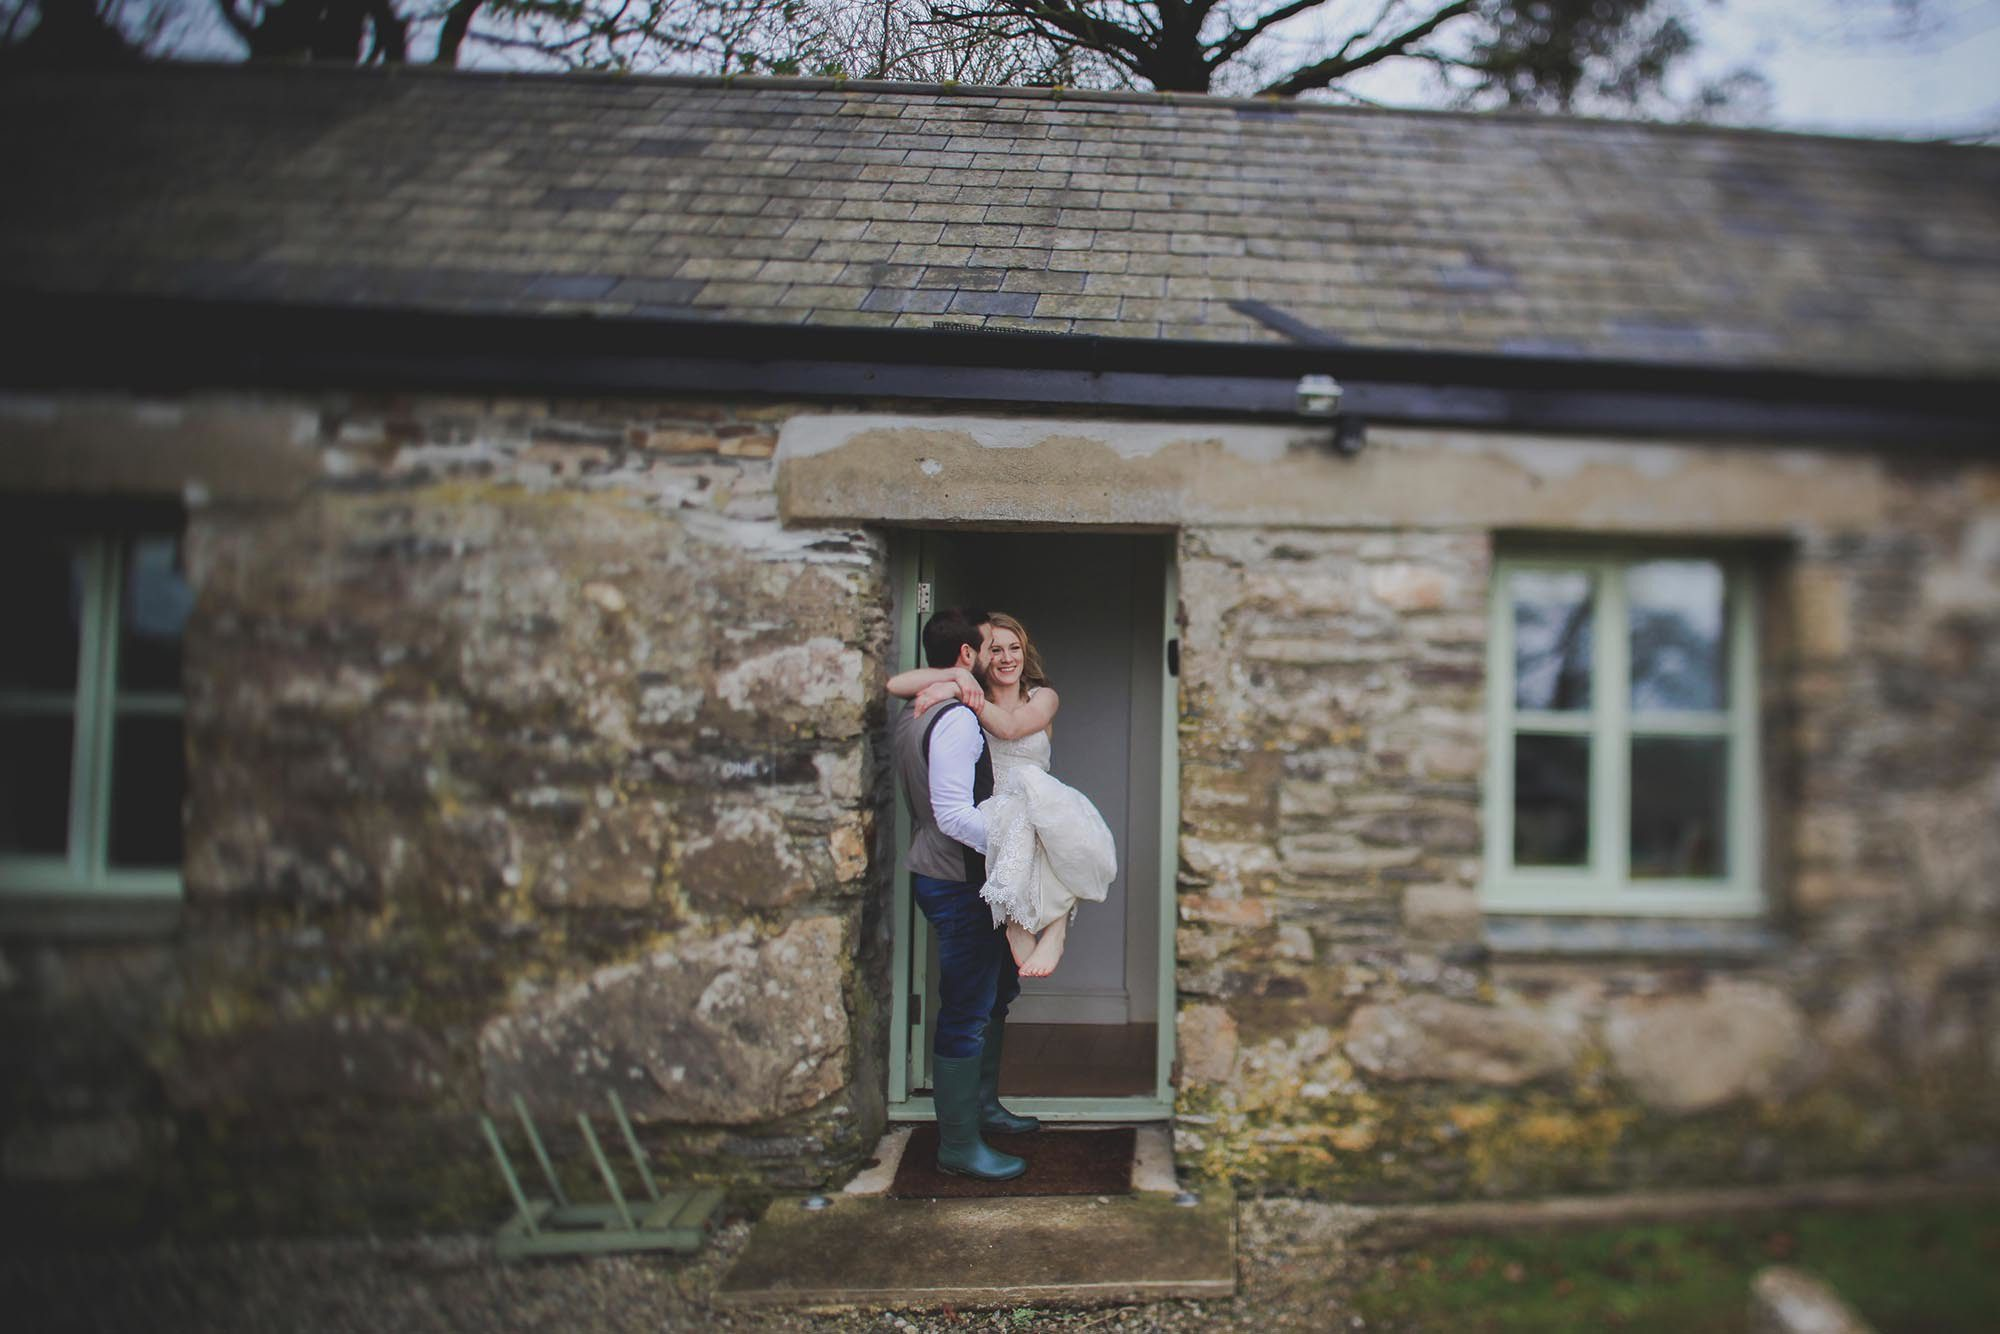 This is a photo of a groom carrying his bride over the threshold into cottage number 1. The groom is on the left, side on to the camera and the bride is on the right seated in the grrom's arms facing the camera. The groom has dar hair and is wearing dark trousers, a brown tweed waistcoat and a white shirt. He has a beard and is weraing green wellies. The brode is wearing a short-sleeved, full length white dress. She has light brown hair that she is wearing loose and her feet are bare. Cottage number one sleeps two people. The proerty is single storey. The photo shows part of the width of the cottage. In the background you can see trees which are bare. The cottage is made of granite stone and is brown and grey in colour. The roof is constructed of grey slate and is pitched with the roof line running from left to right of the photograph along the length of the cottage. The door is in the middle of the cottage and is painted pale green and is open. On either side of the door you can see a window. They are 4 pane casement style windows and are also painted pale green. On the left hand side of the door you can seee a 4 spoke welly rack painted pale green.